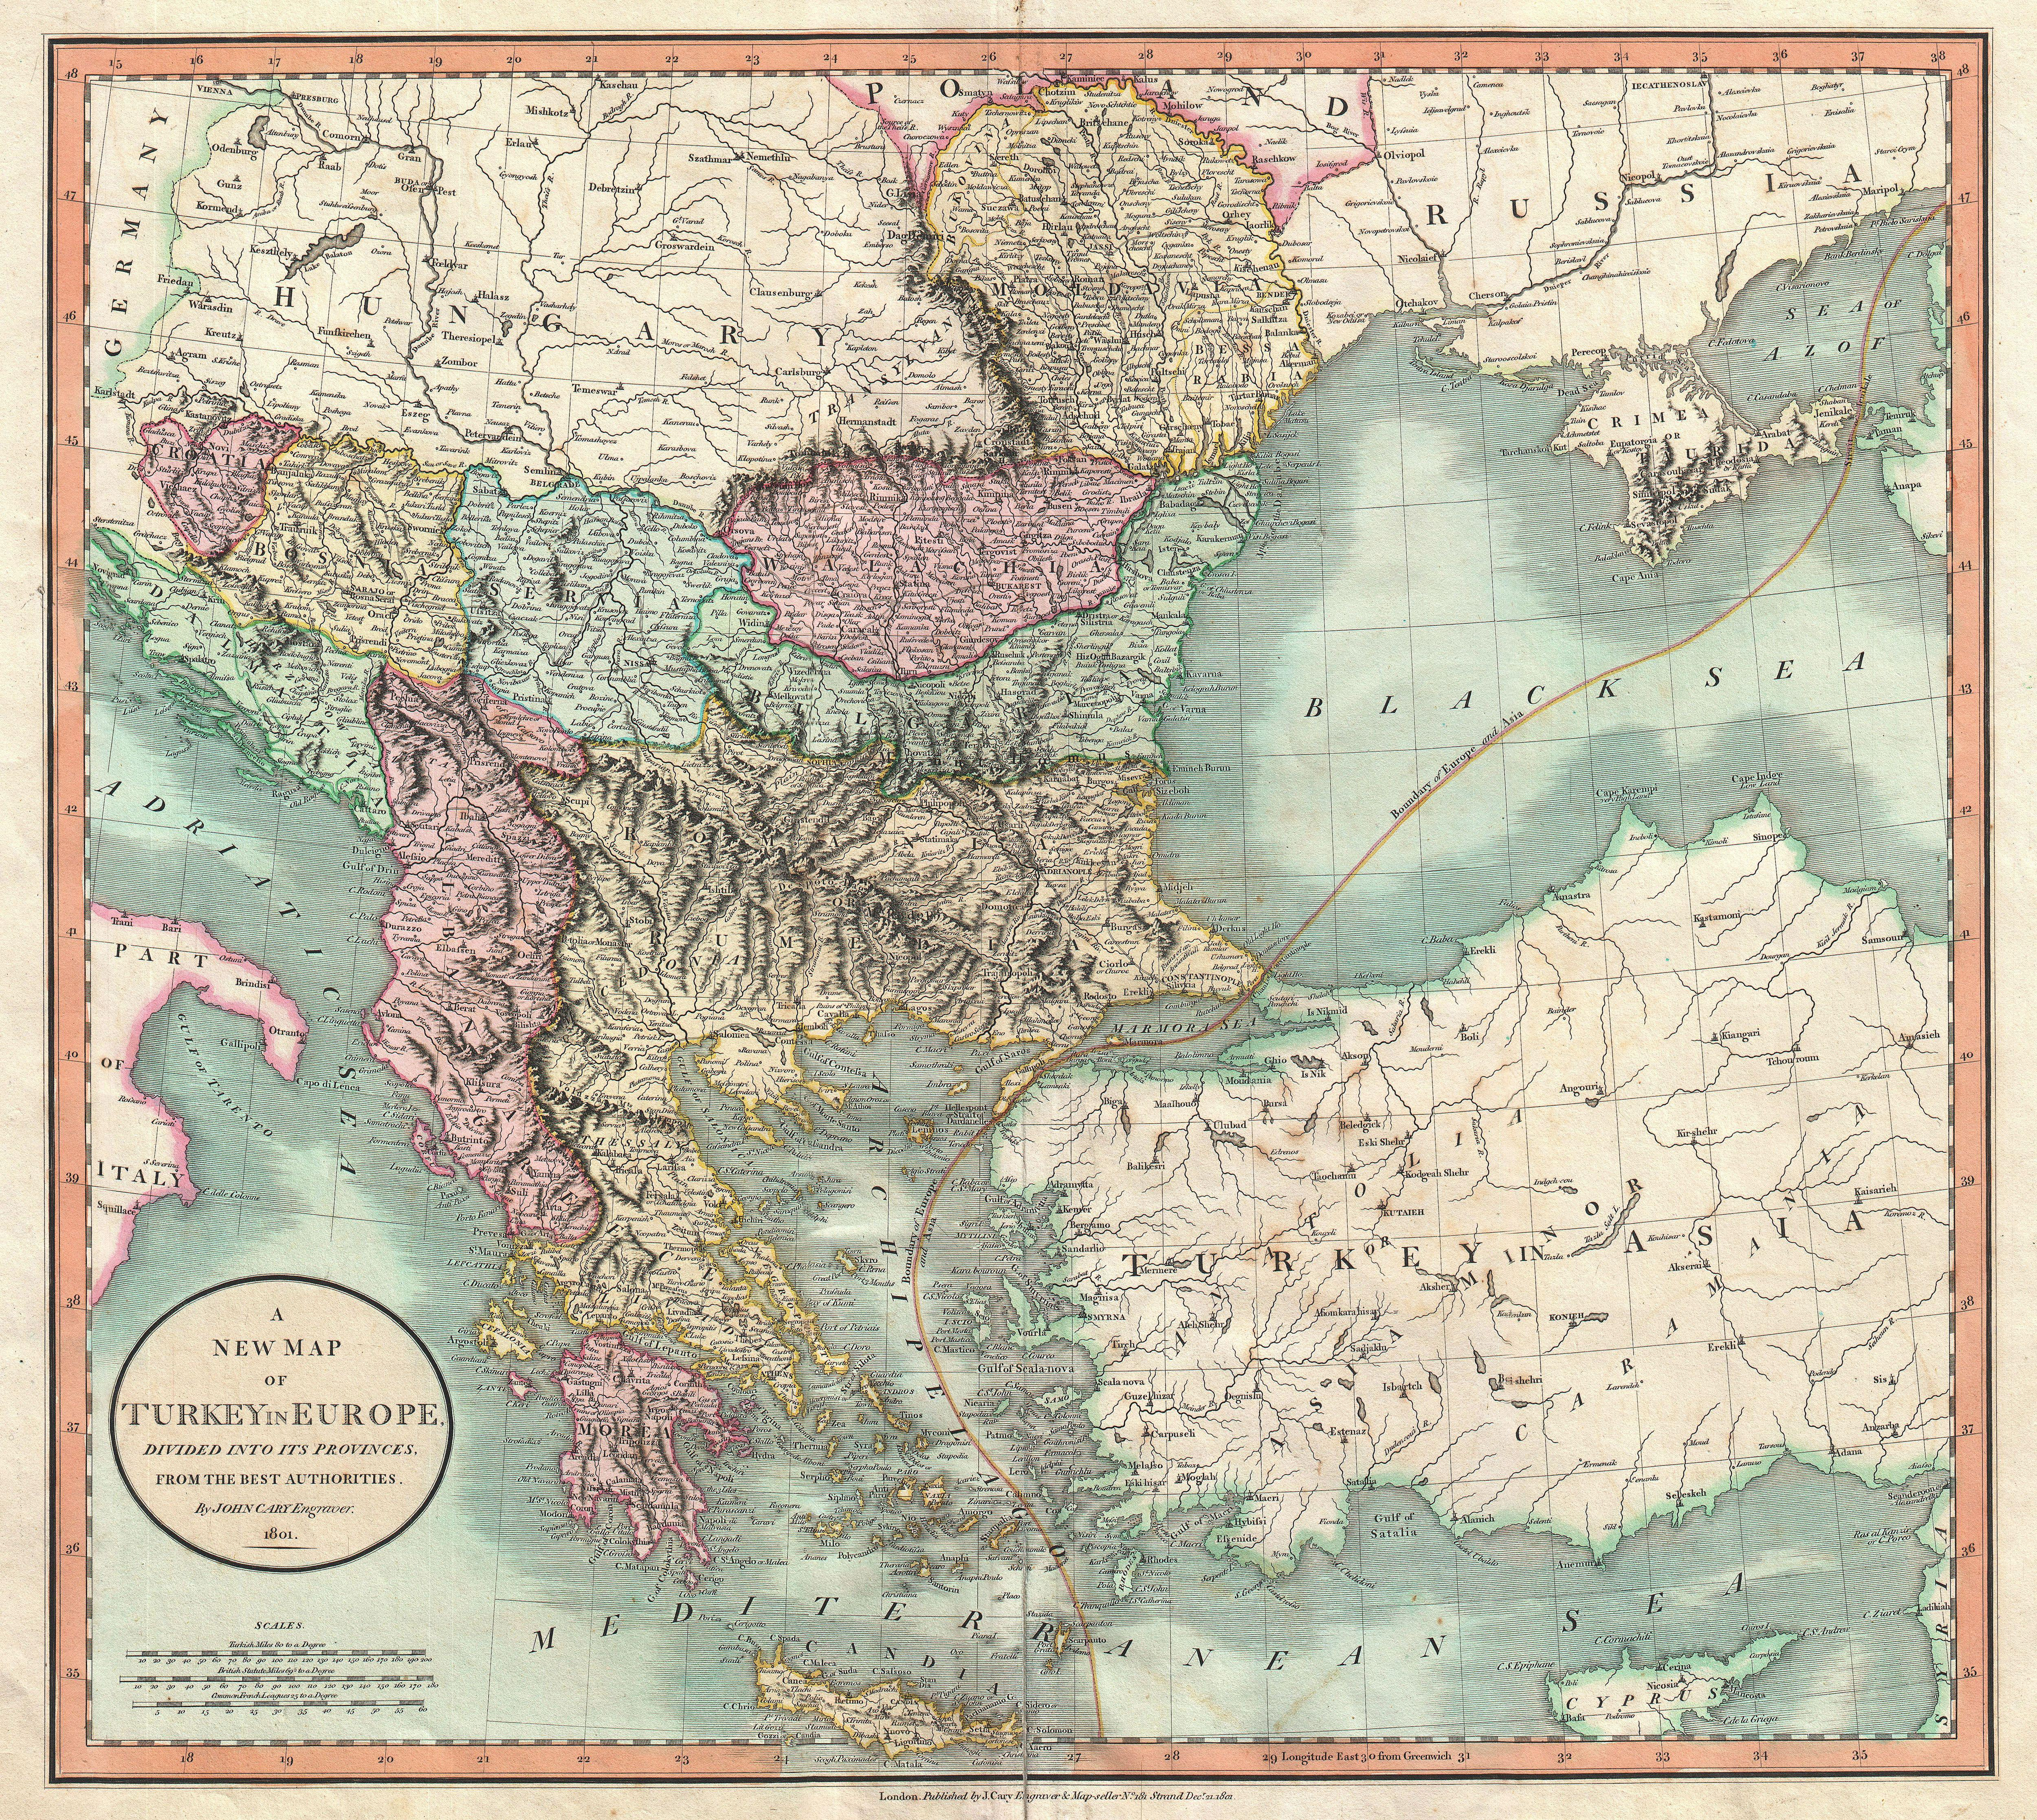 File1801 Cary Map of Turkey in Europe Greece and the Balkan